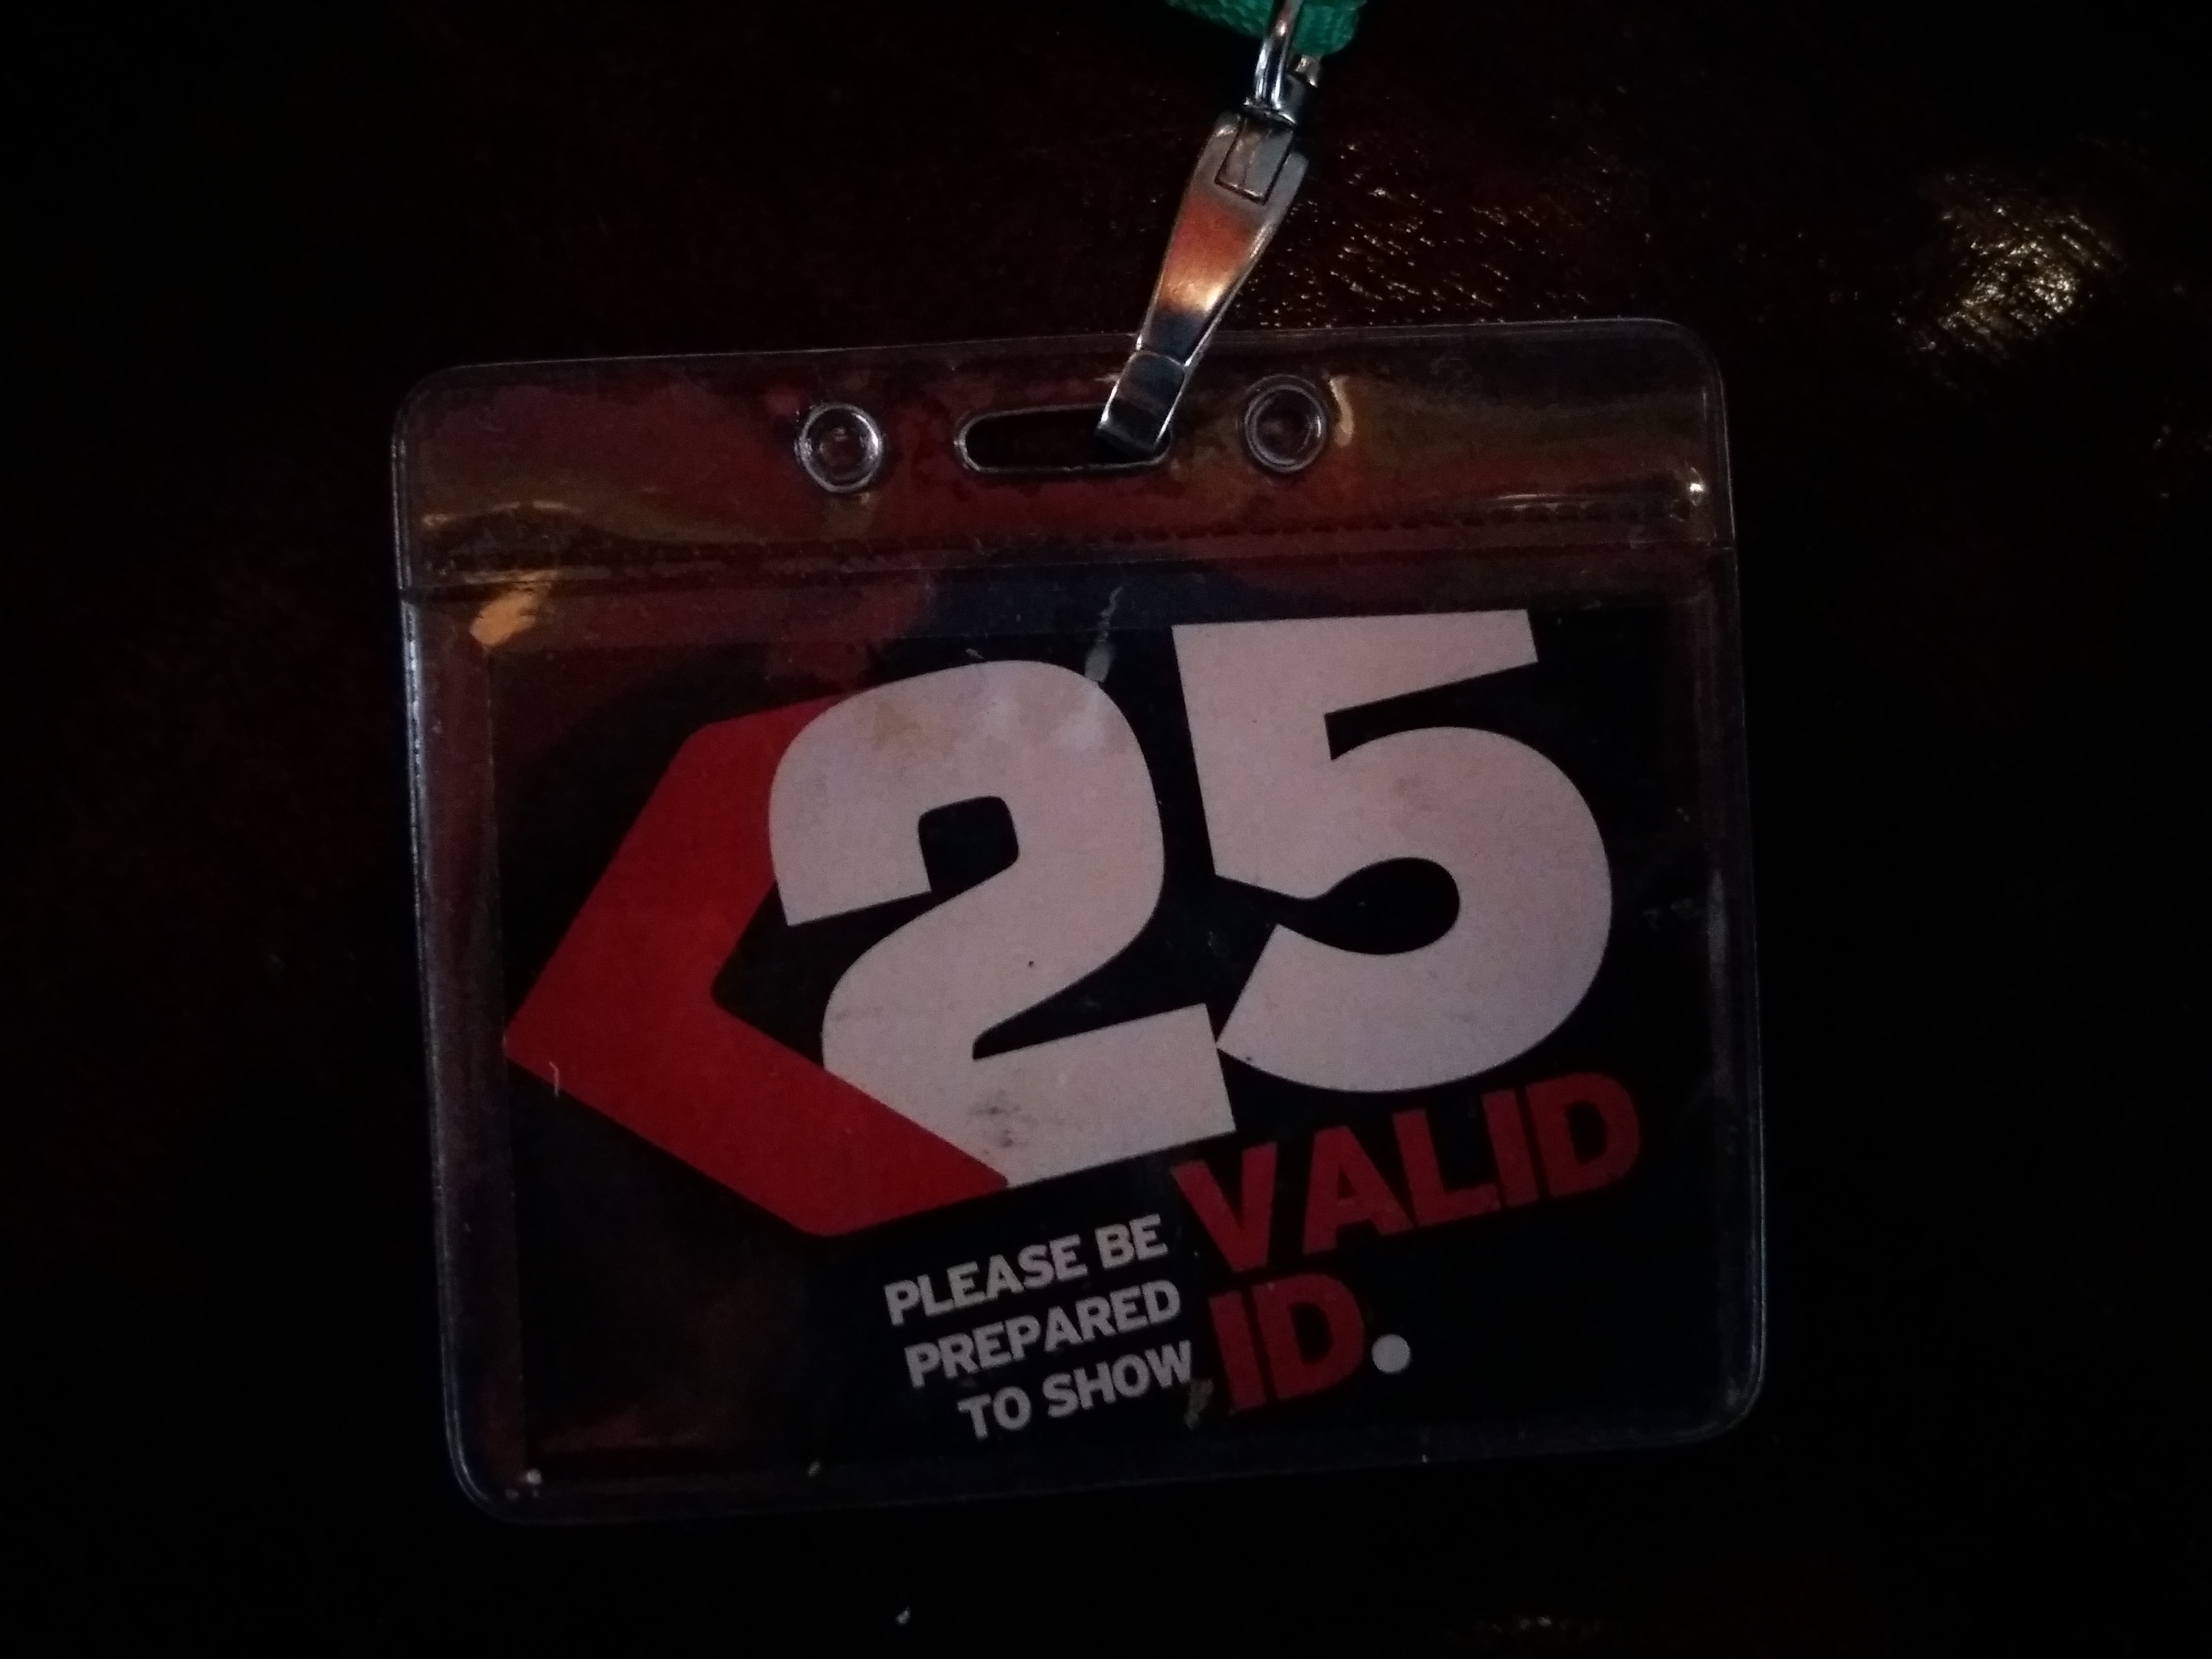 In many bars, staff members are wearing these lanyards to raise people's awareness.